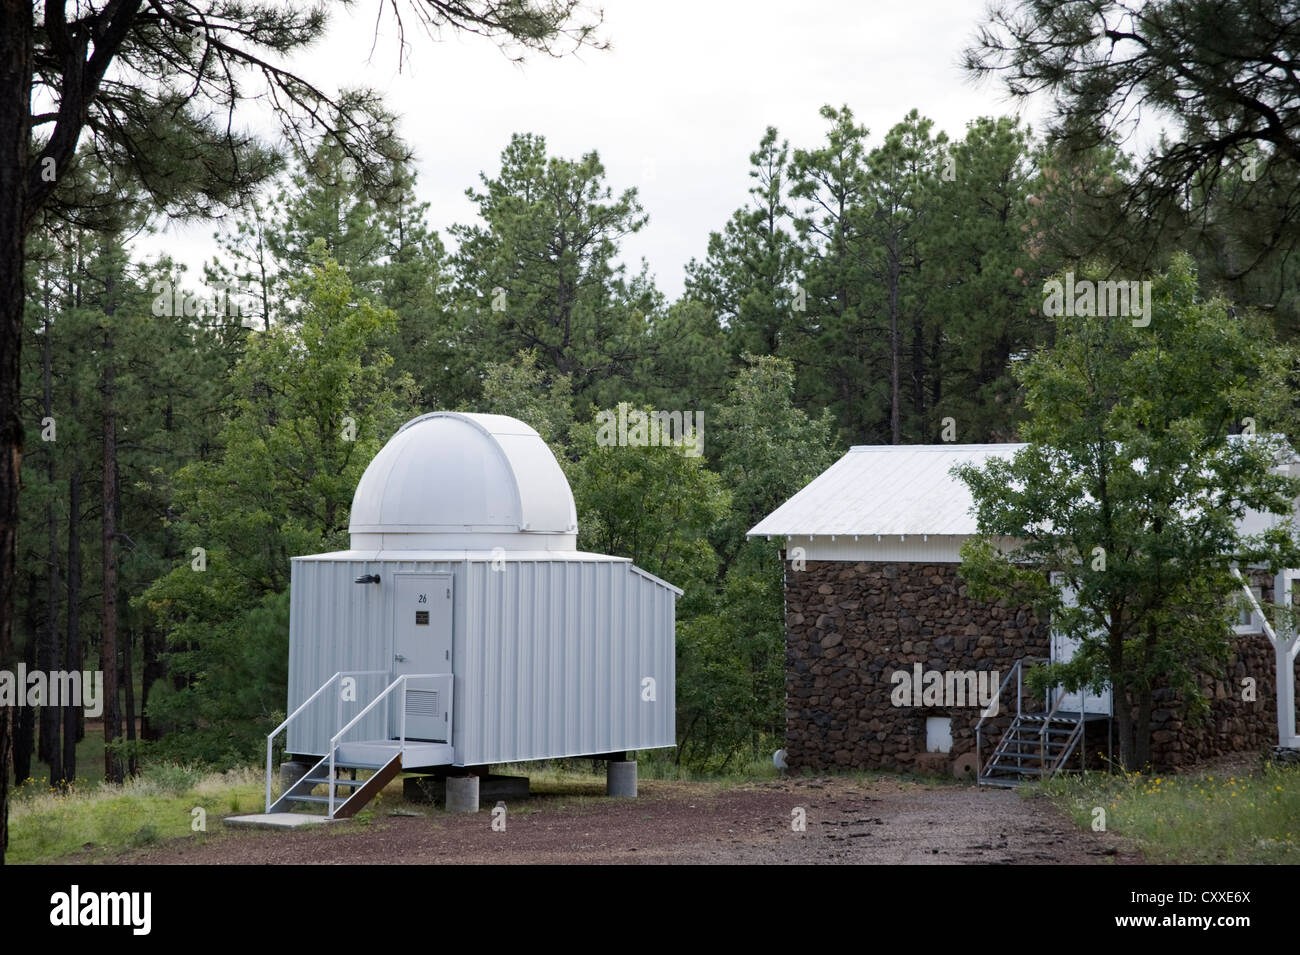 One of the telescopes at Lowell Observatory, Flagstaff, Arizona, USA - Stock Image